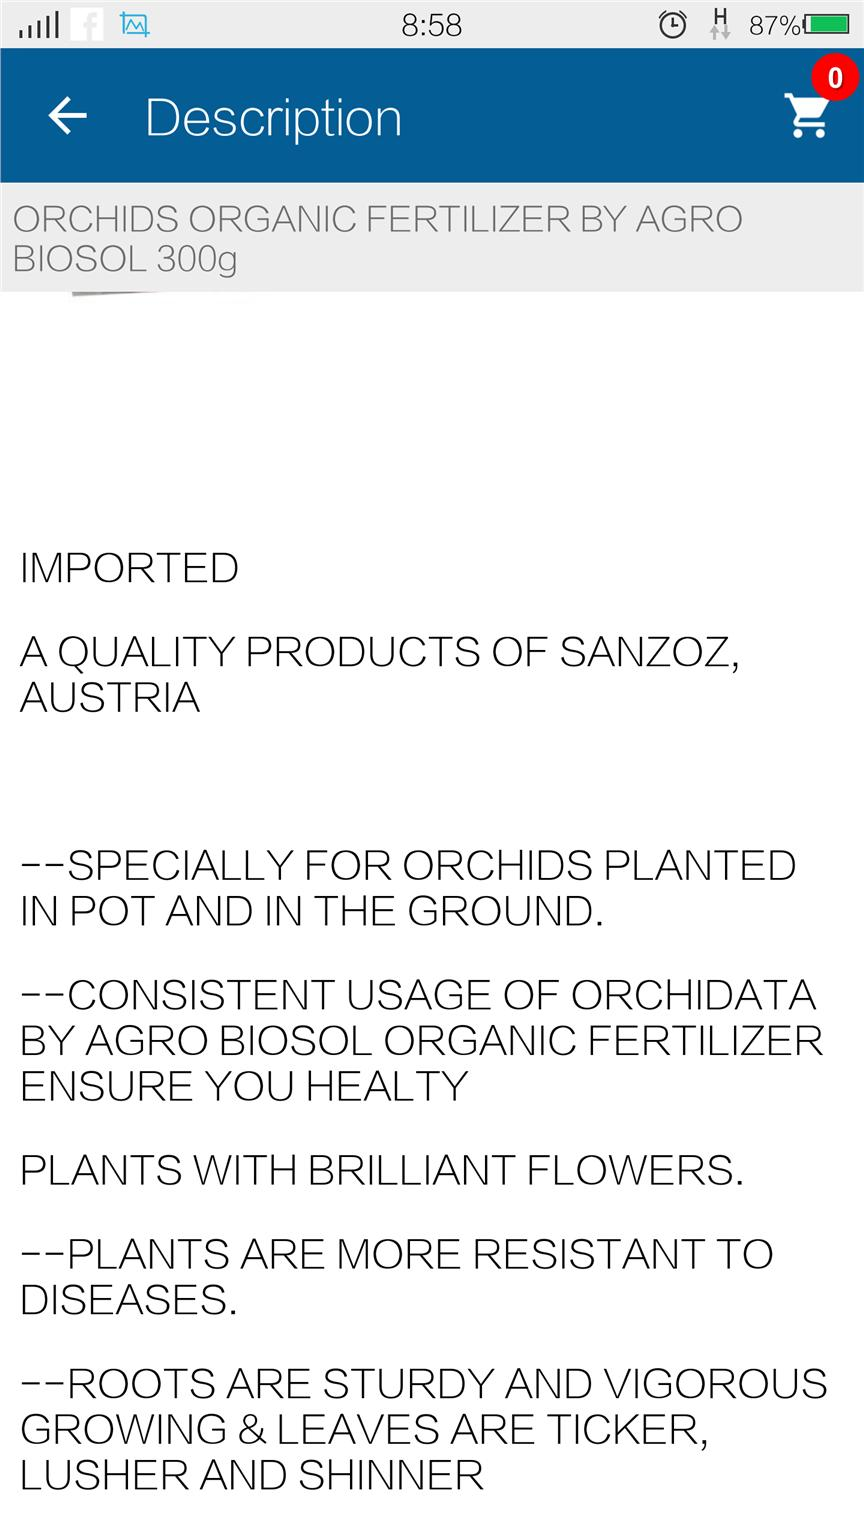 Fertilizer Orchid Organic Fertiliser By Agro Biosol 300g Good Quality